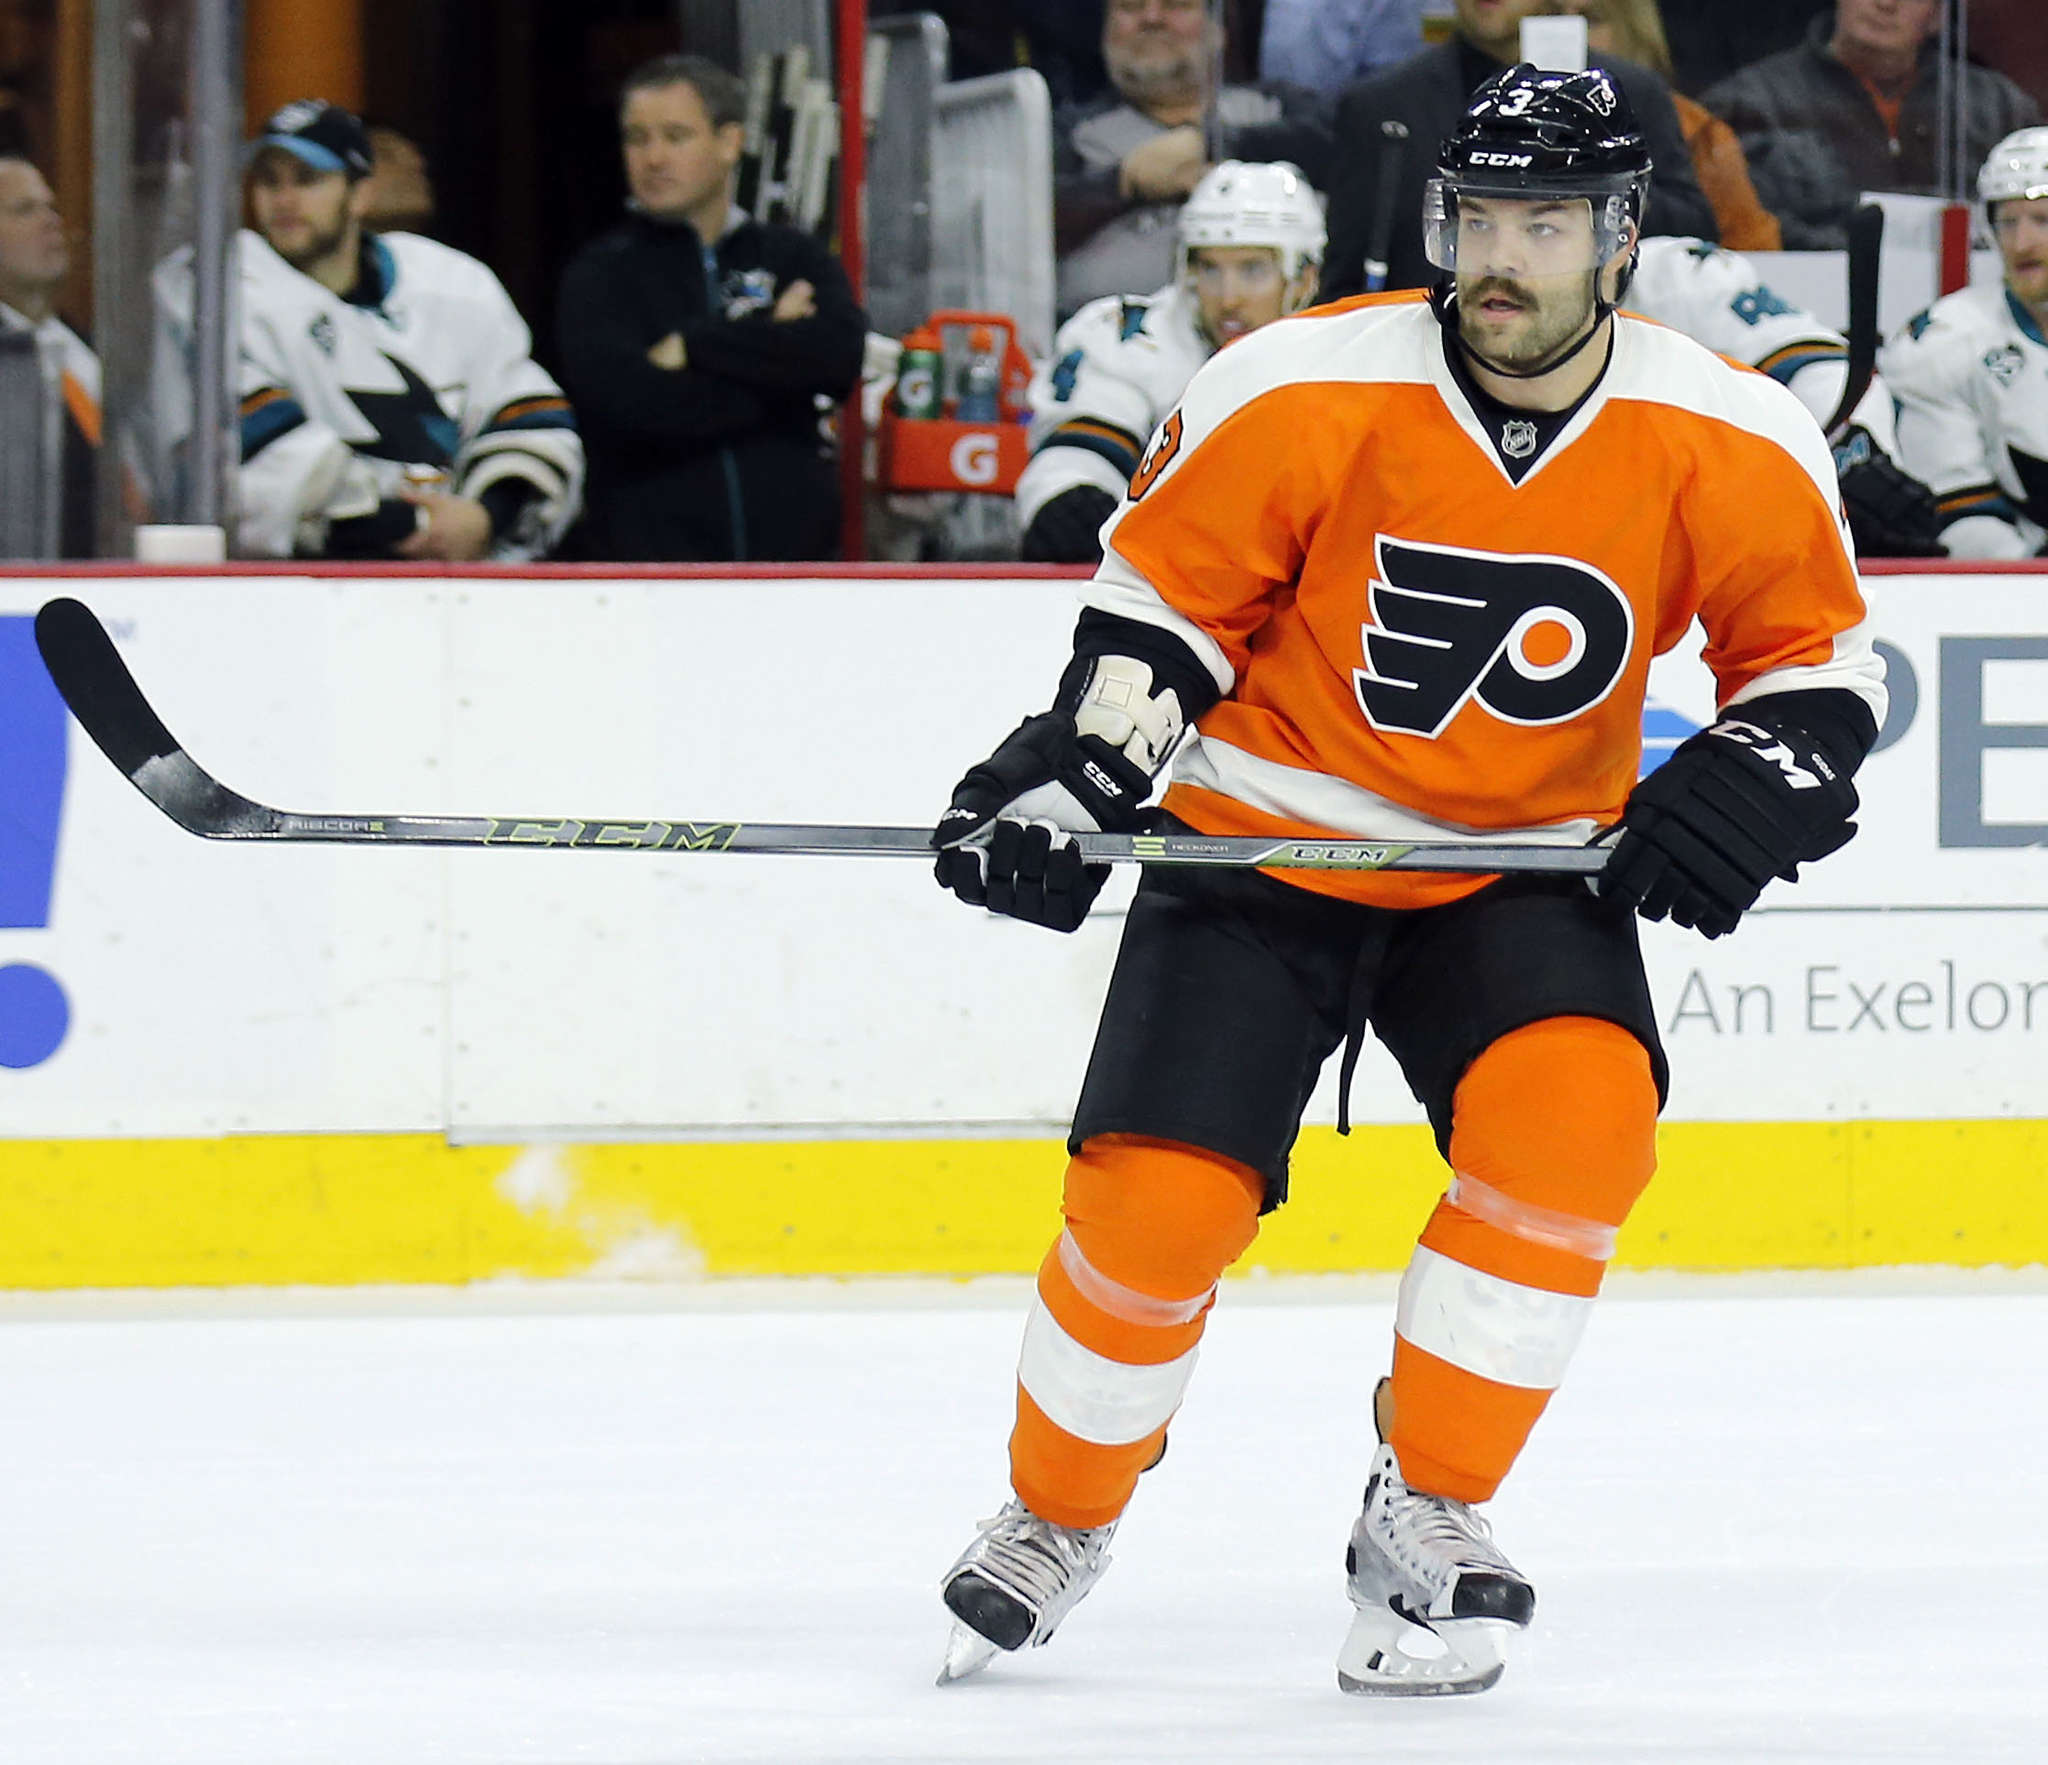 The Flyers´ Radko Gudas will sit out the third and final game of a suspension Tuesday and be eligible to return Thursday in St. Louis. His physical play has been a pleasant surprise this season, second in the league with 118 hits.